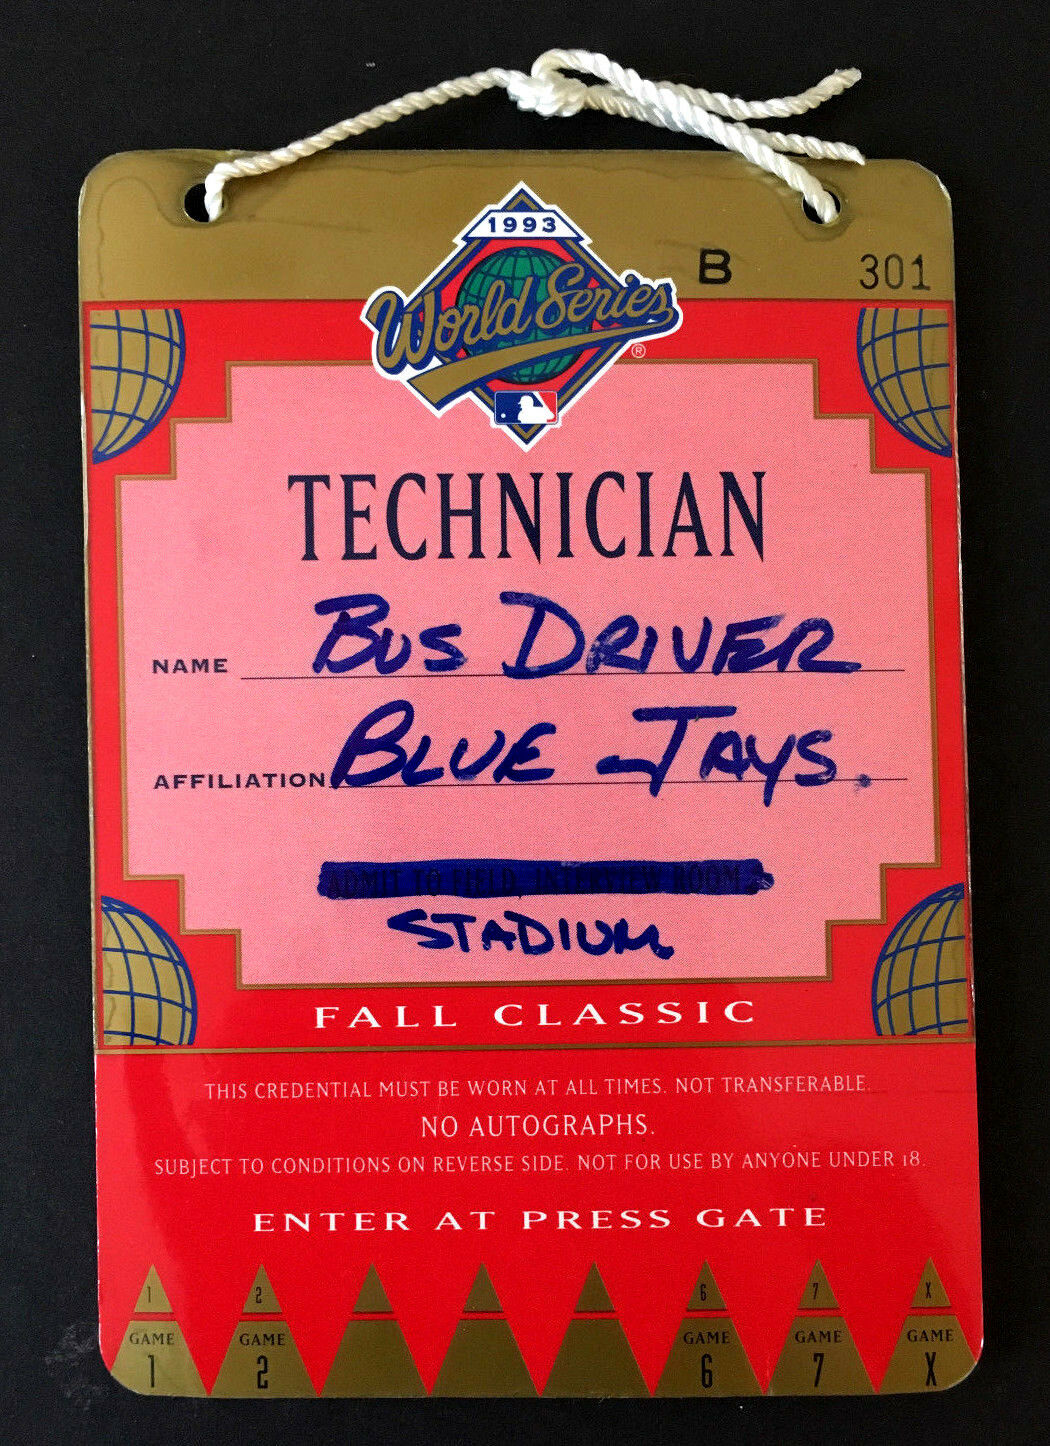 1993 World Series Baseball Toronto Blue Jays Tech Credentials For Bus Driver